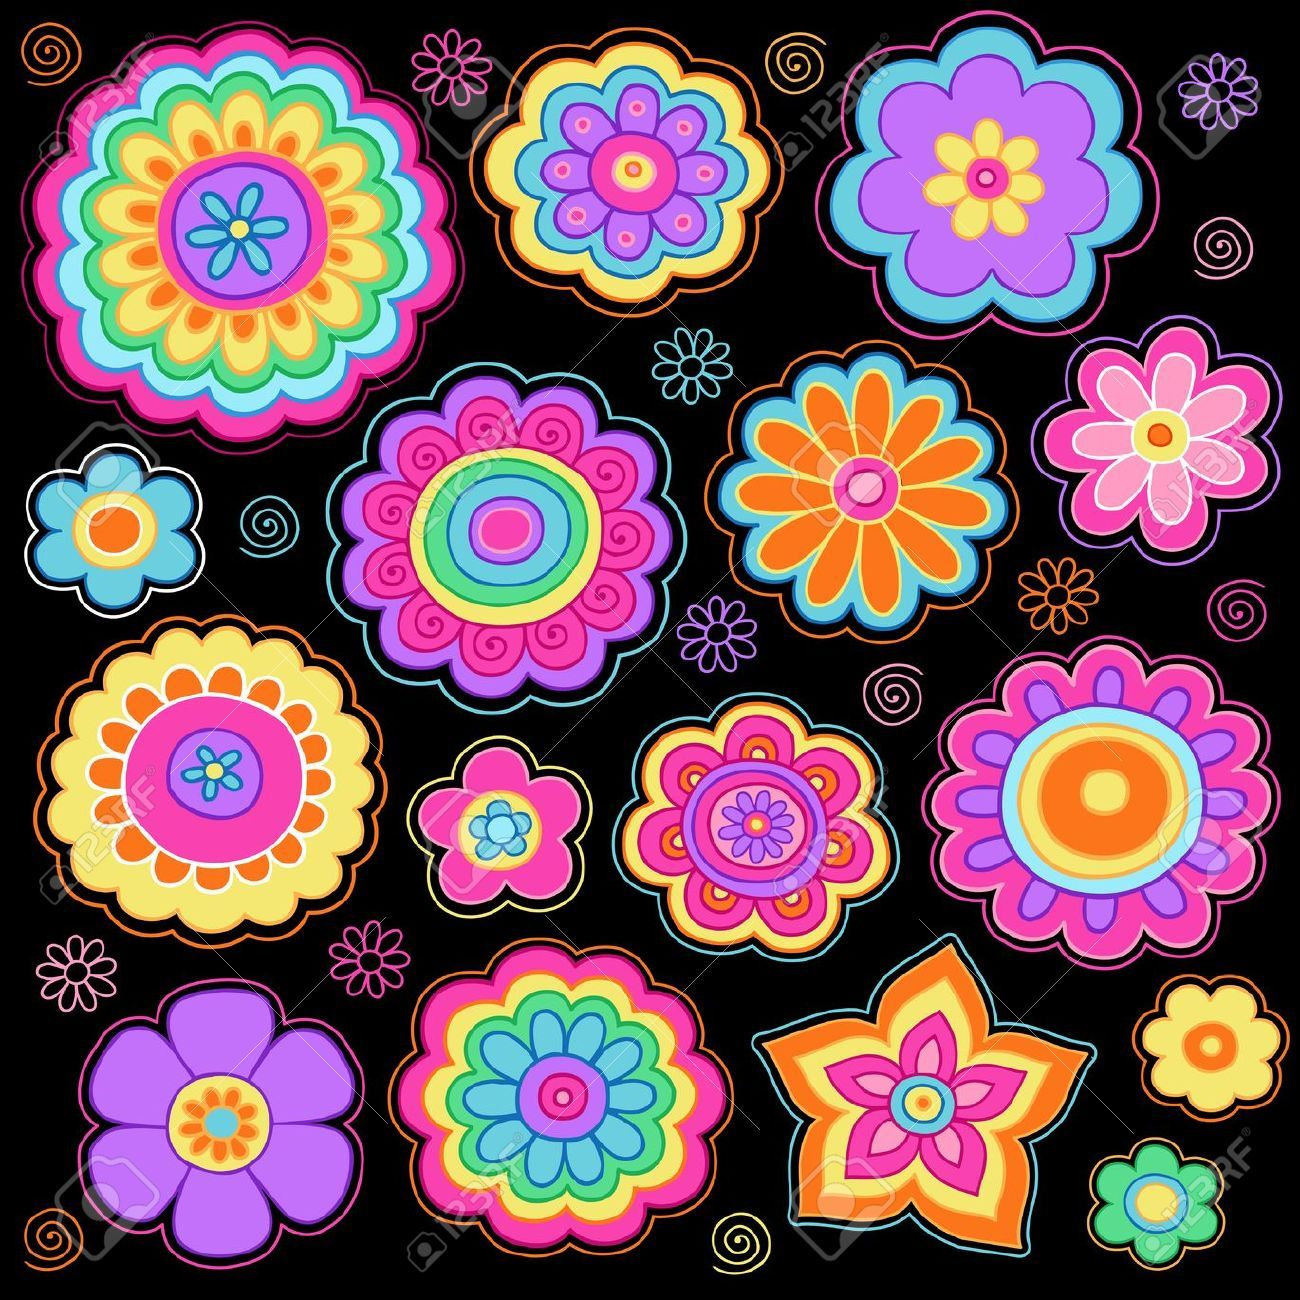 Flower Power Groovy Psychedelic Hand Drawn Notebook Doodle